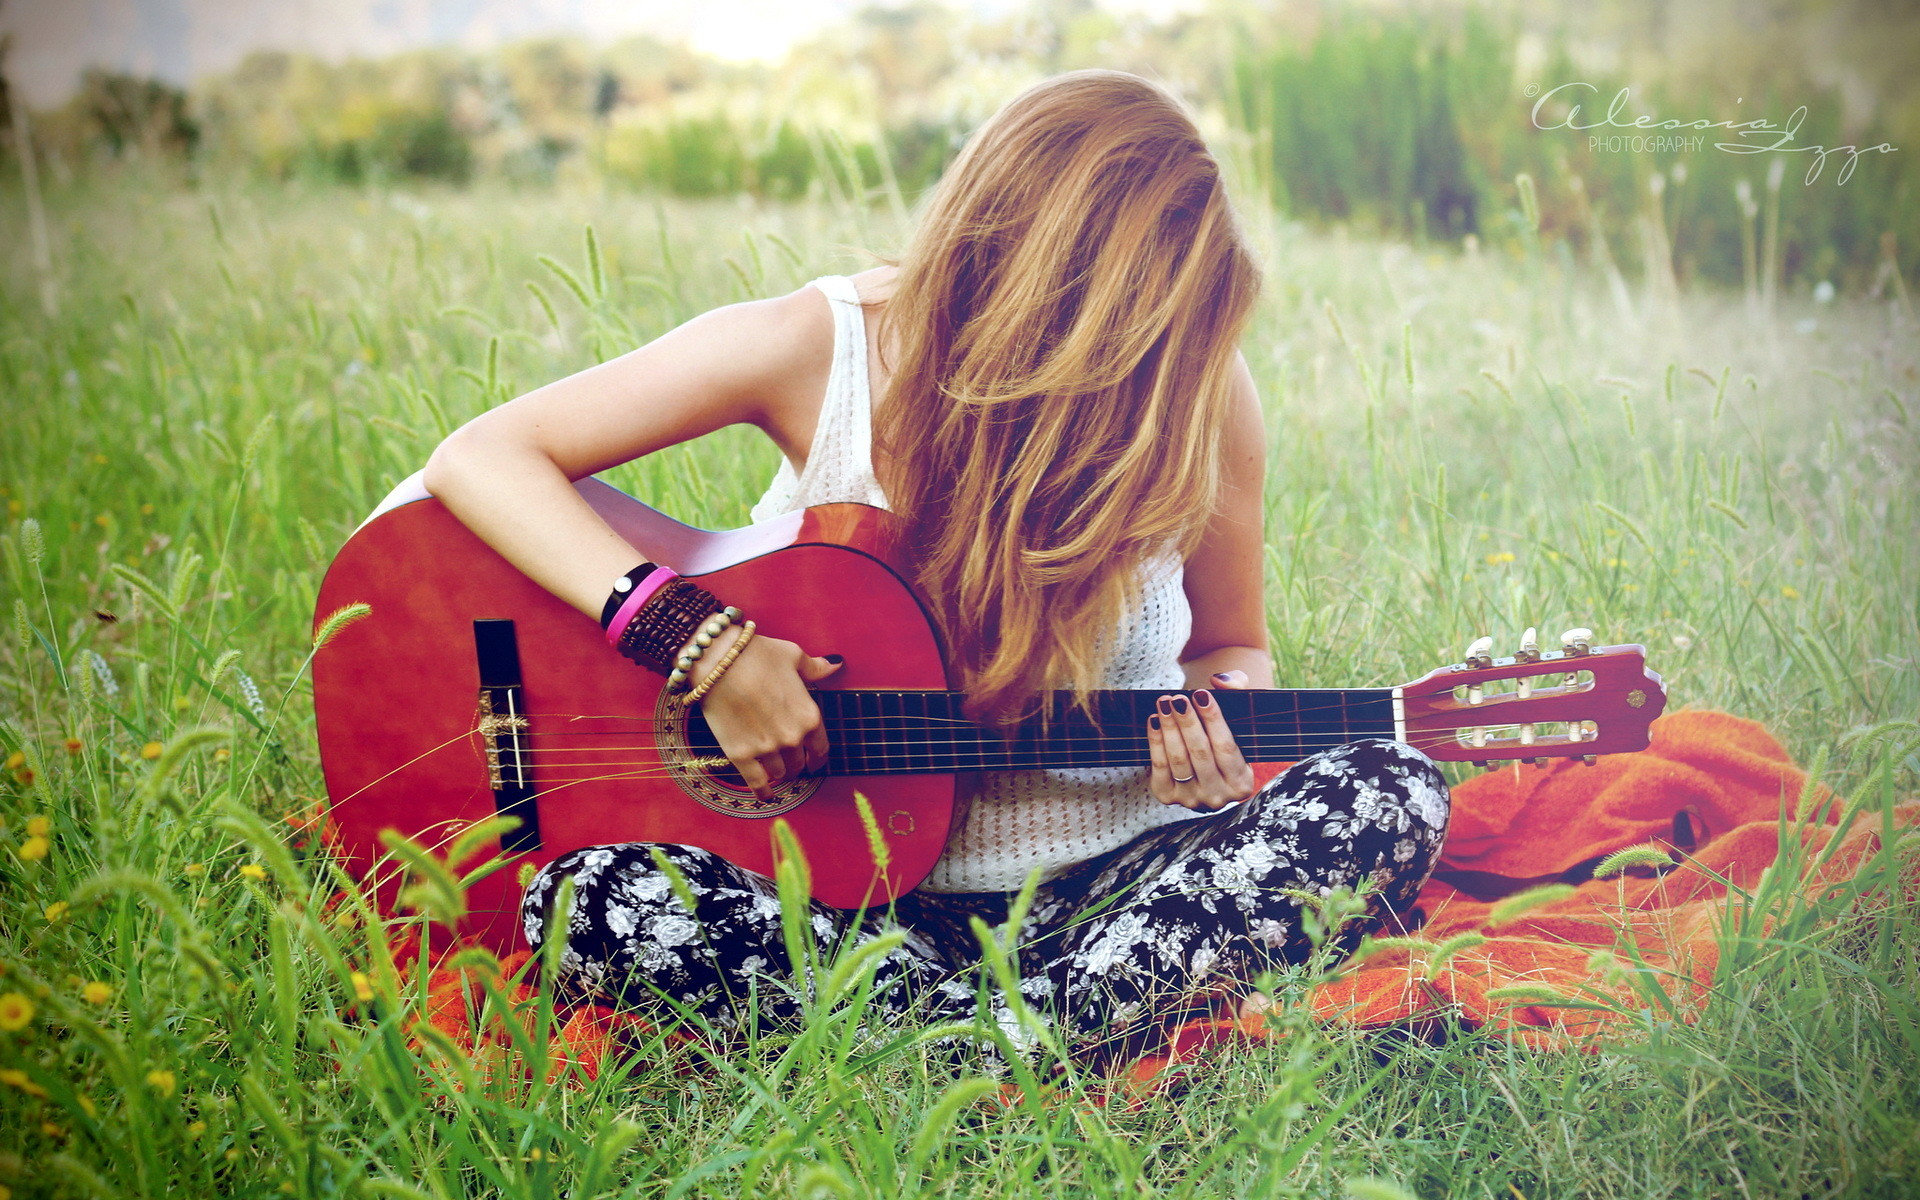 224 Best Images About Girls With Guitars On Pinterest: Guitar Girls Wallpaper (76+ Images